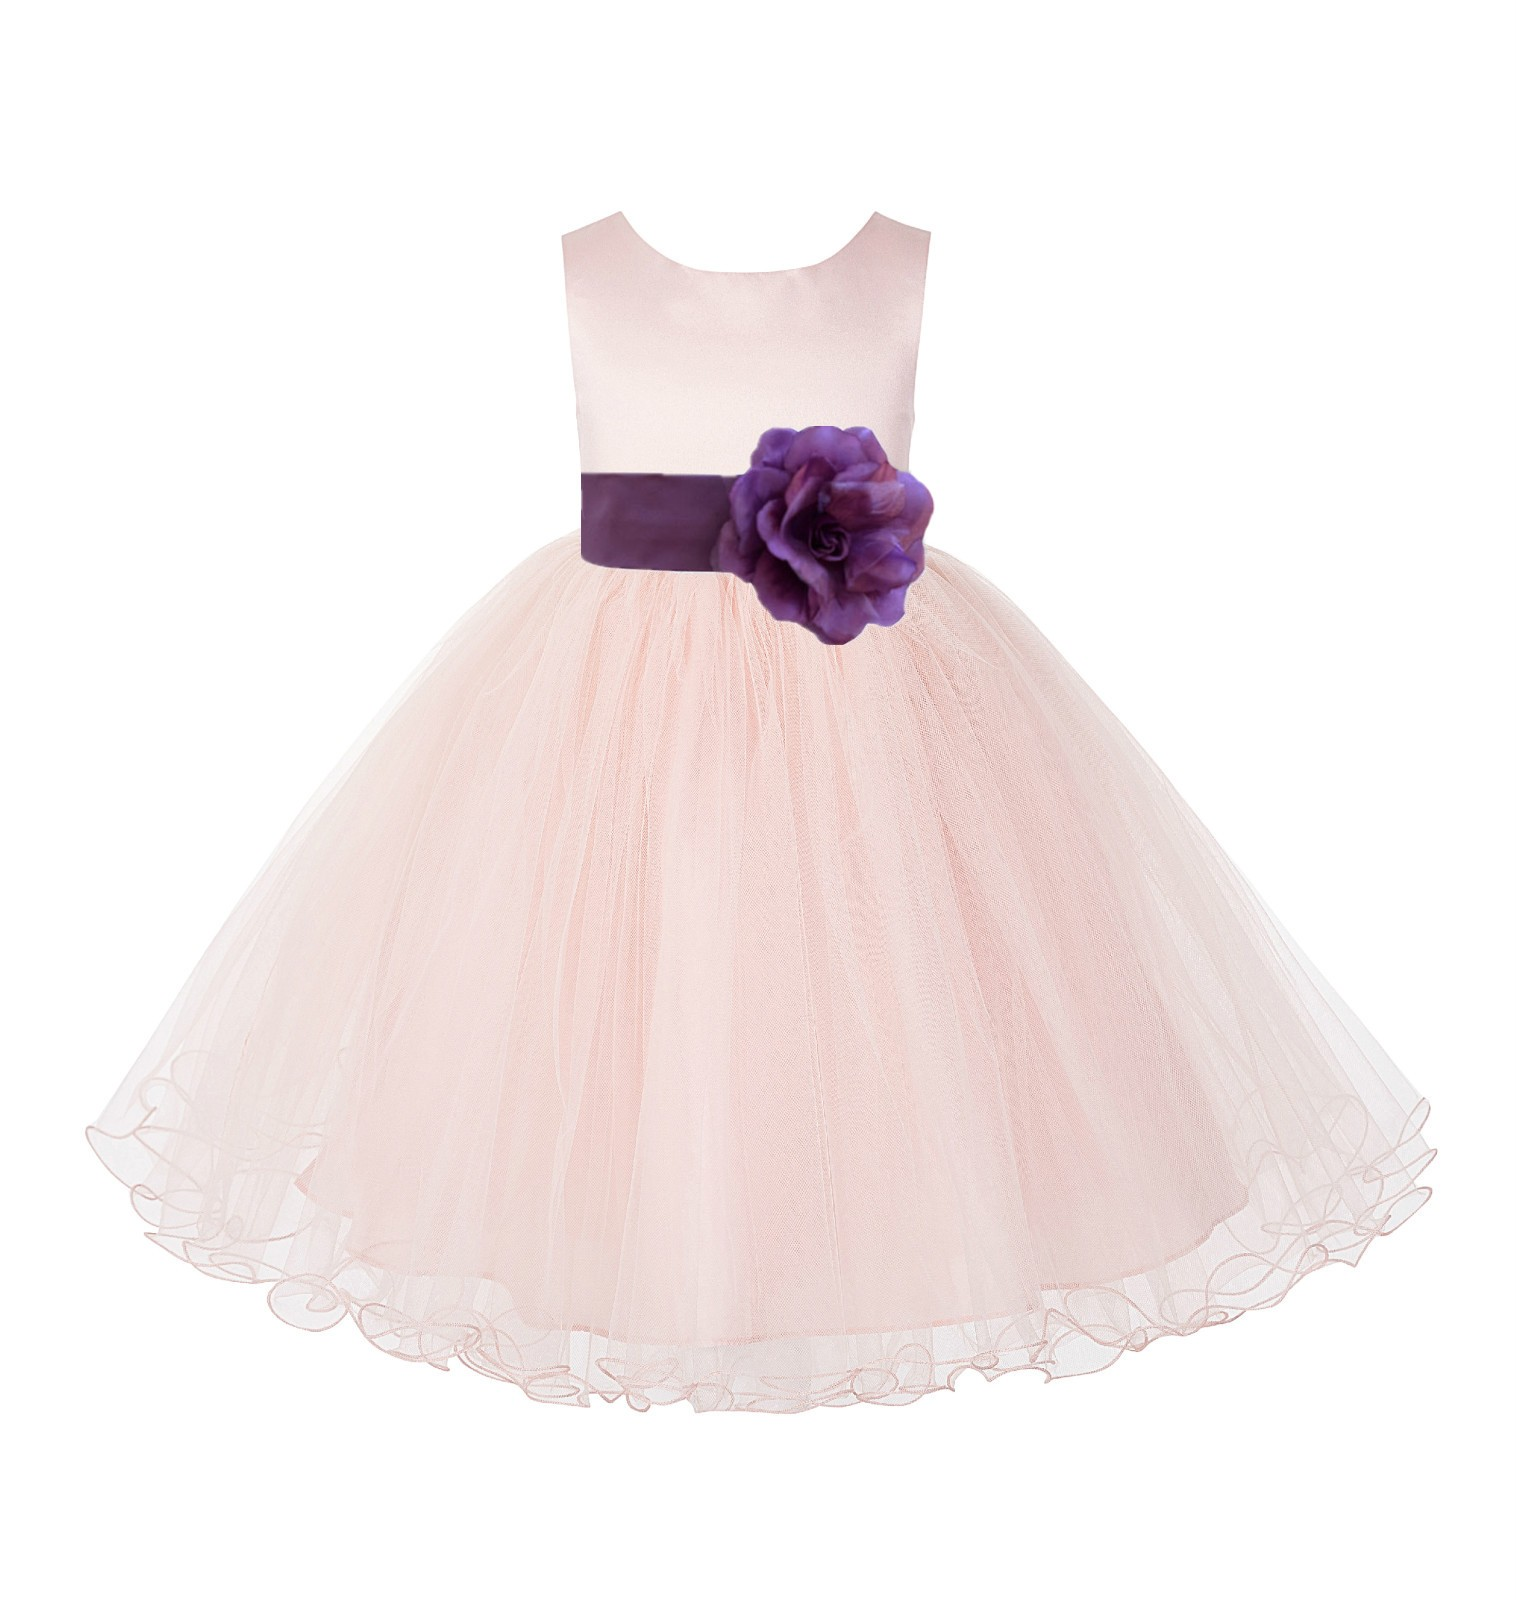 Blush Pink / Wisteria Tulle Rattail Edge Flower Girl Dress Pageant Recital 829S